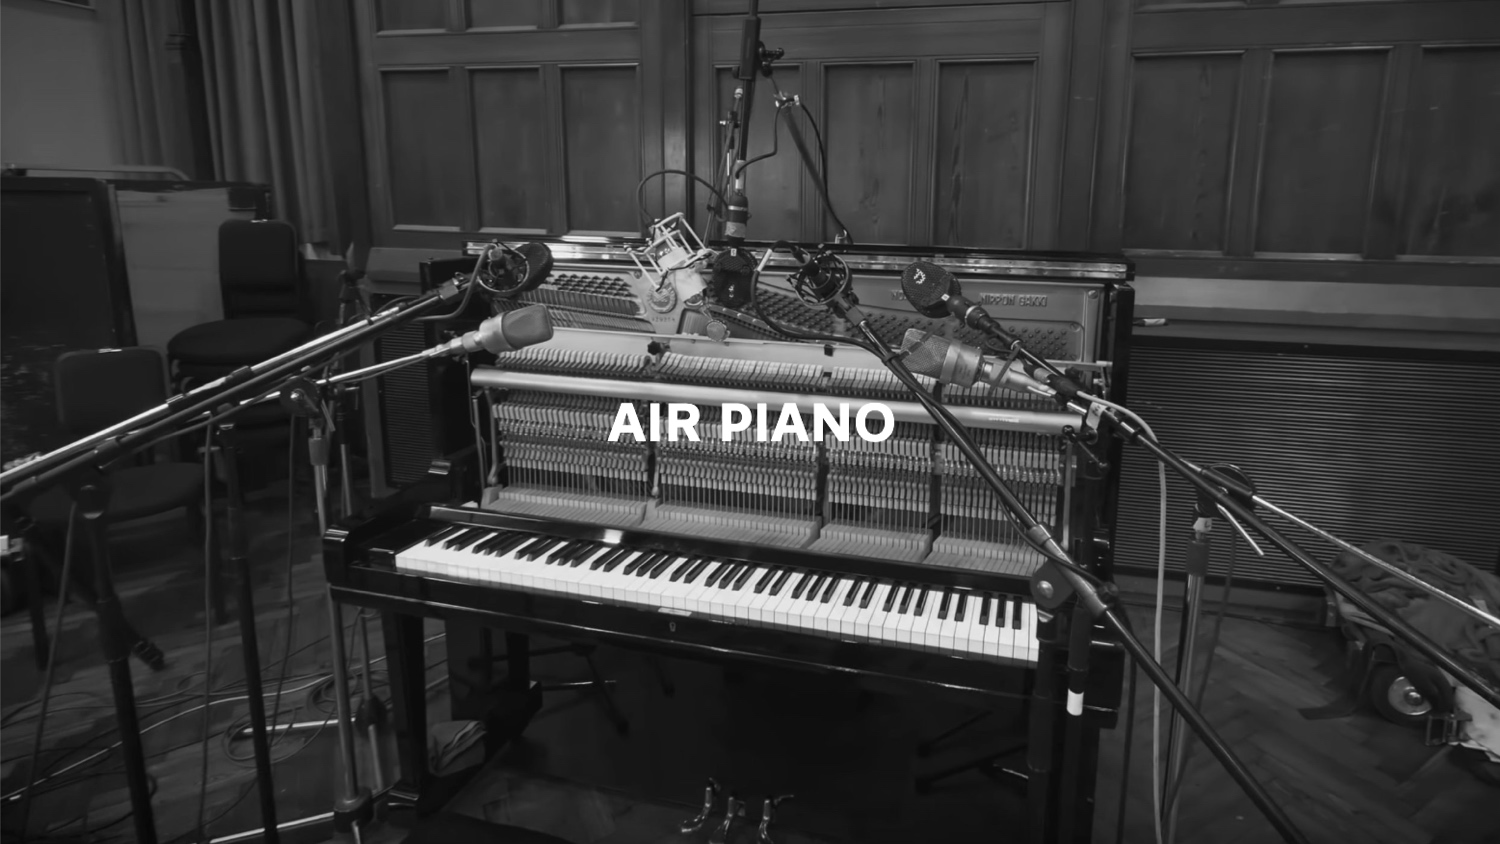 Air Piano Text.jpg